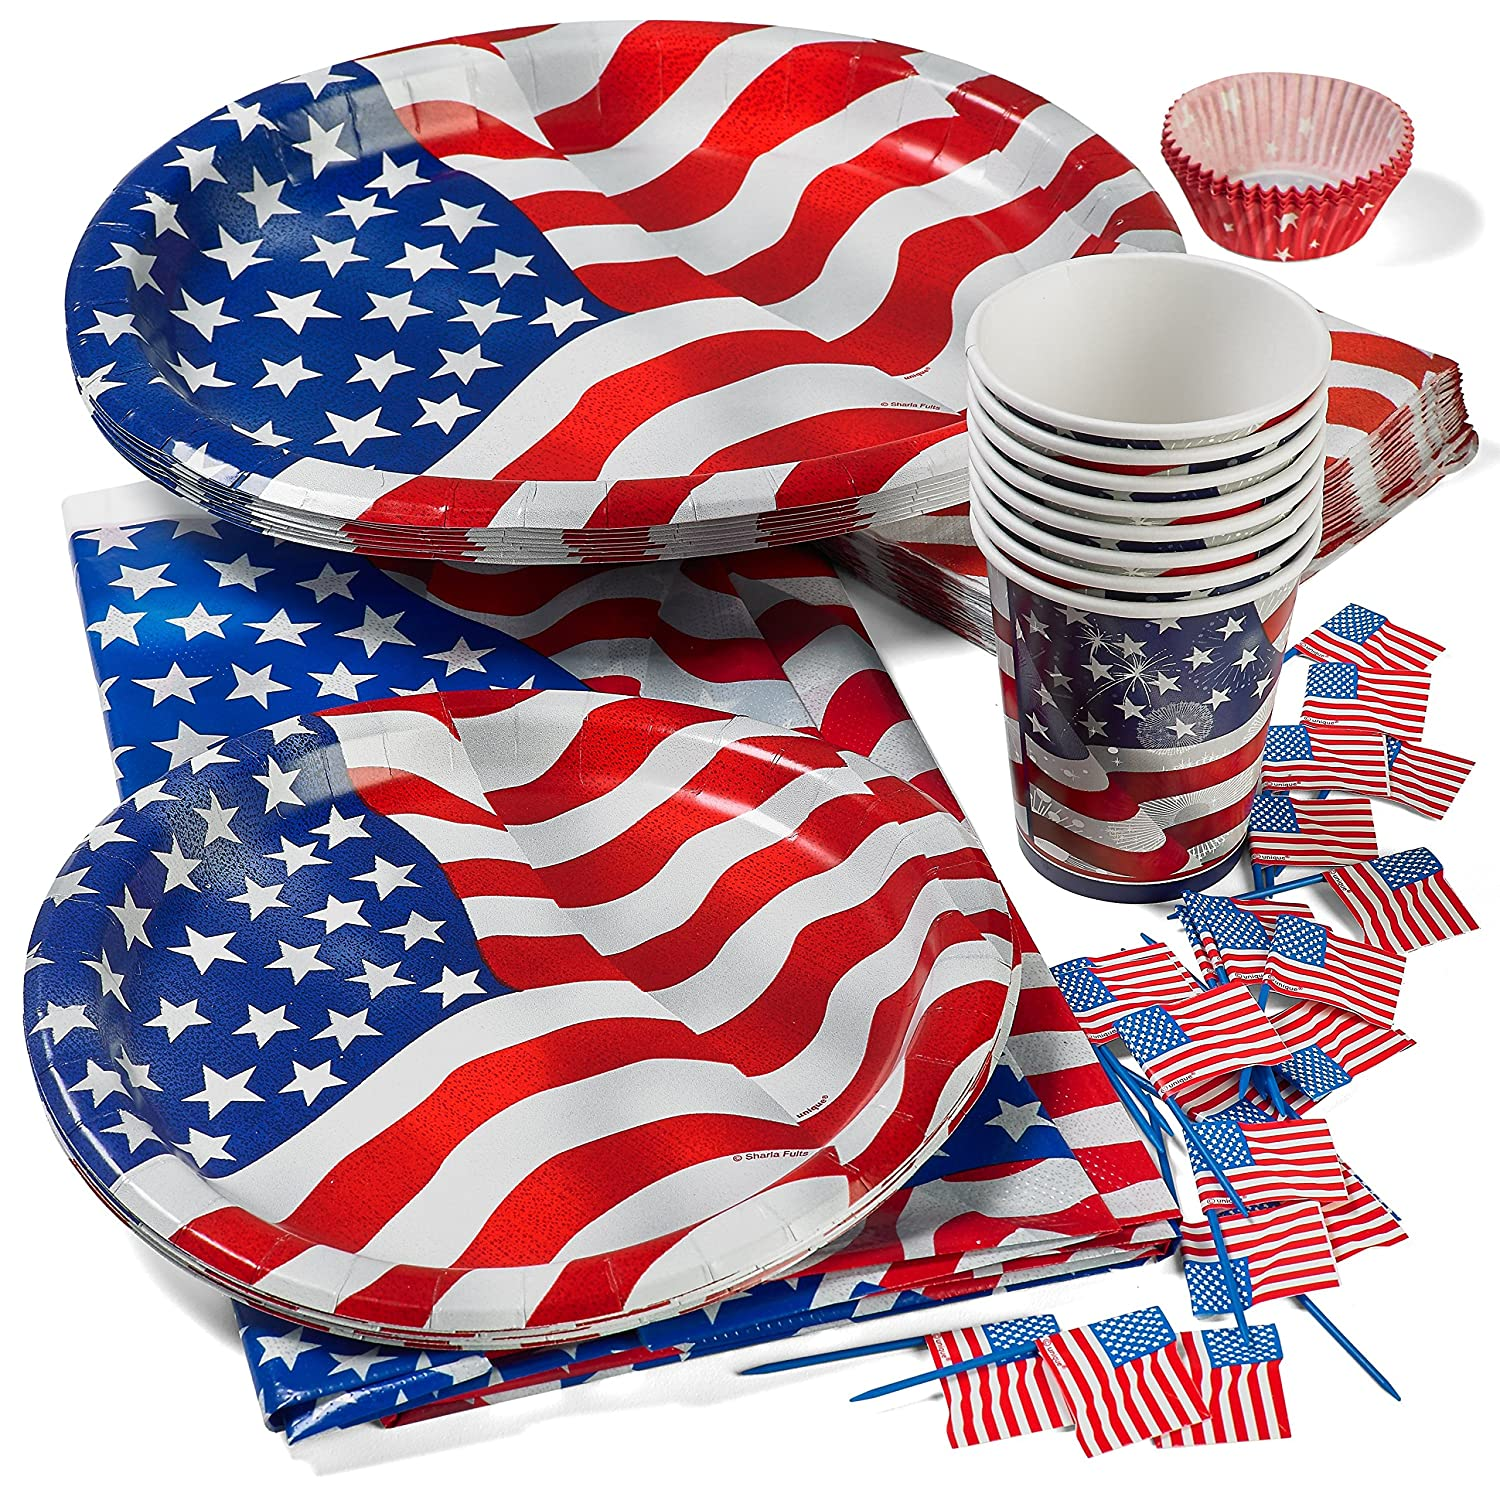 Amazon.com Patriotic 4th of July Party Set Deluxe- Patriotic Cups Patriotic 9\  Plates Patriotic Oval Plates Patriotic Napkins Patriotic Tablecloth ...  sc 1 st  Amazon.com & Amazon.com: Patriotic 4th of July Party Set Deluxe- Patriotic Cups ...